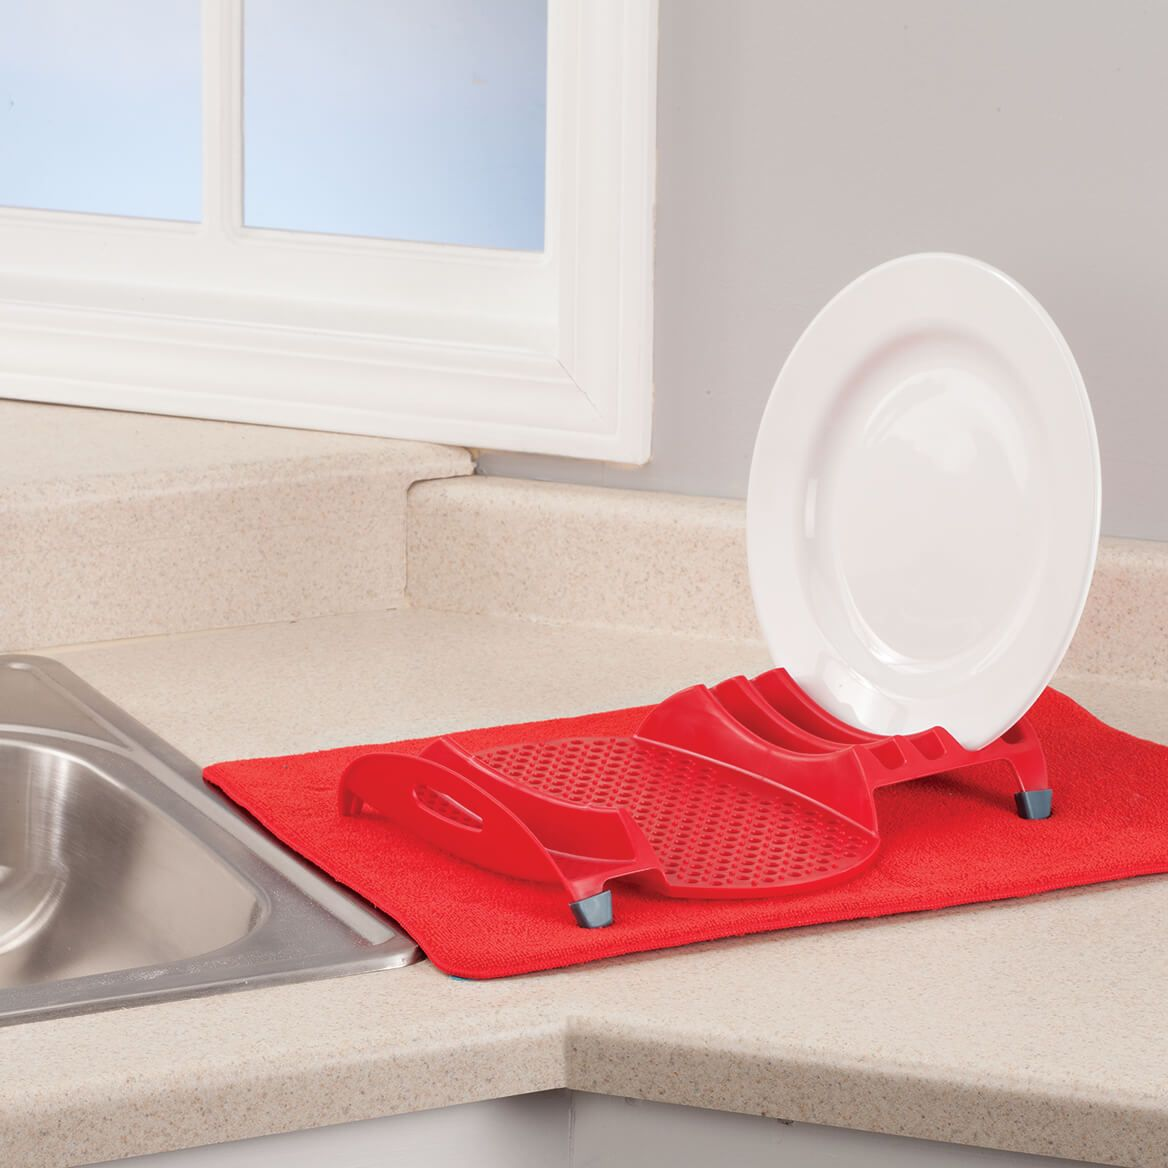 2 Piece Dish Rack with Drying Mat by Chef's Pride-368090